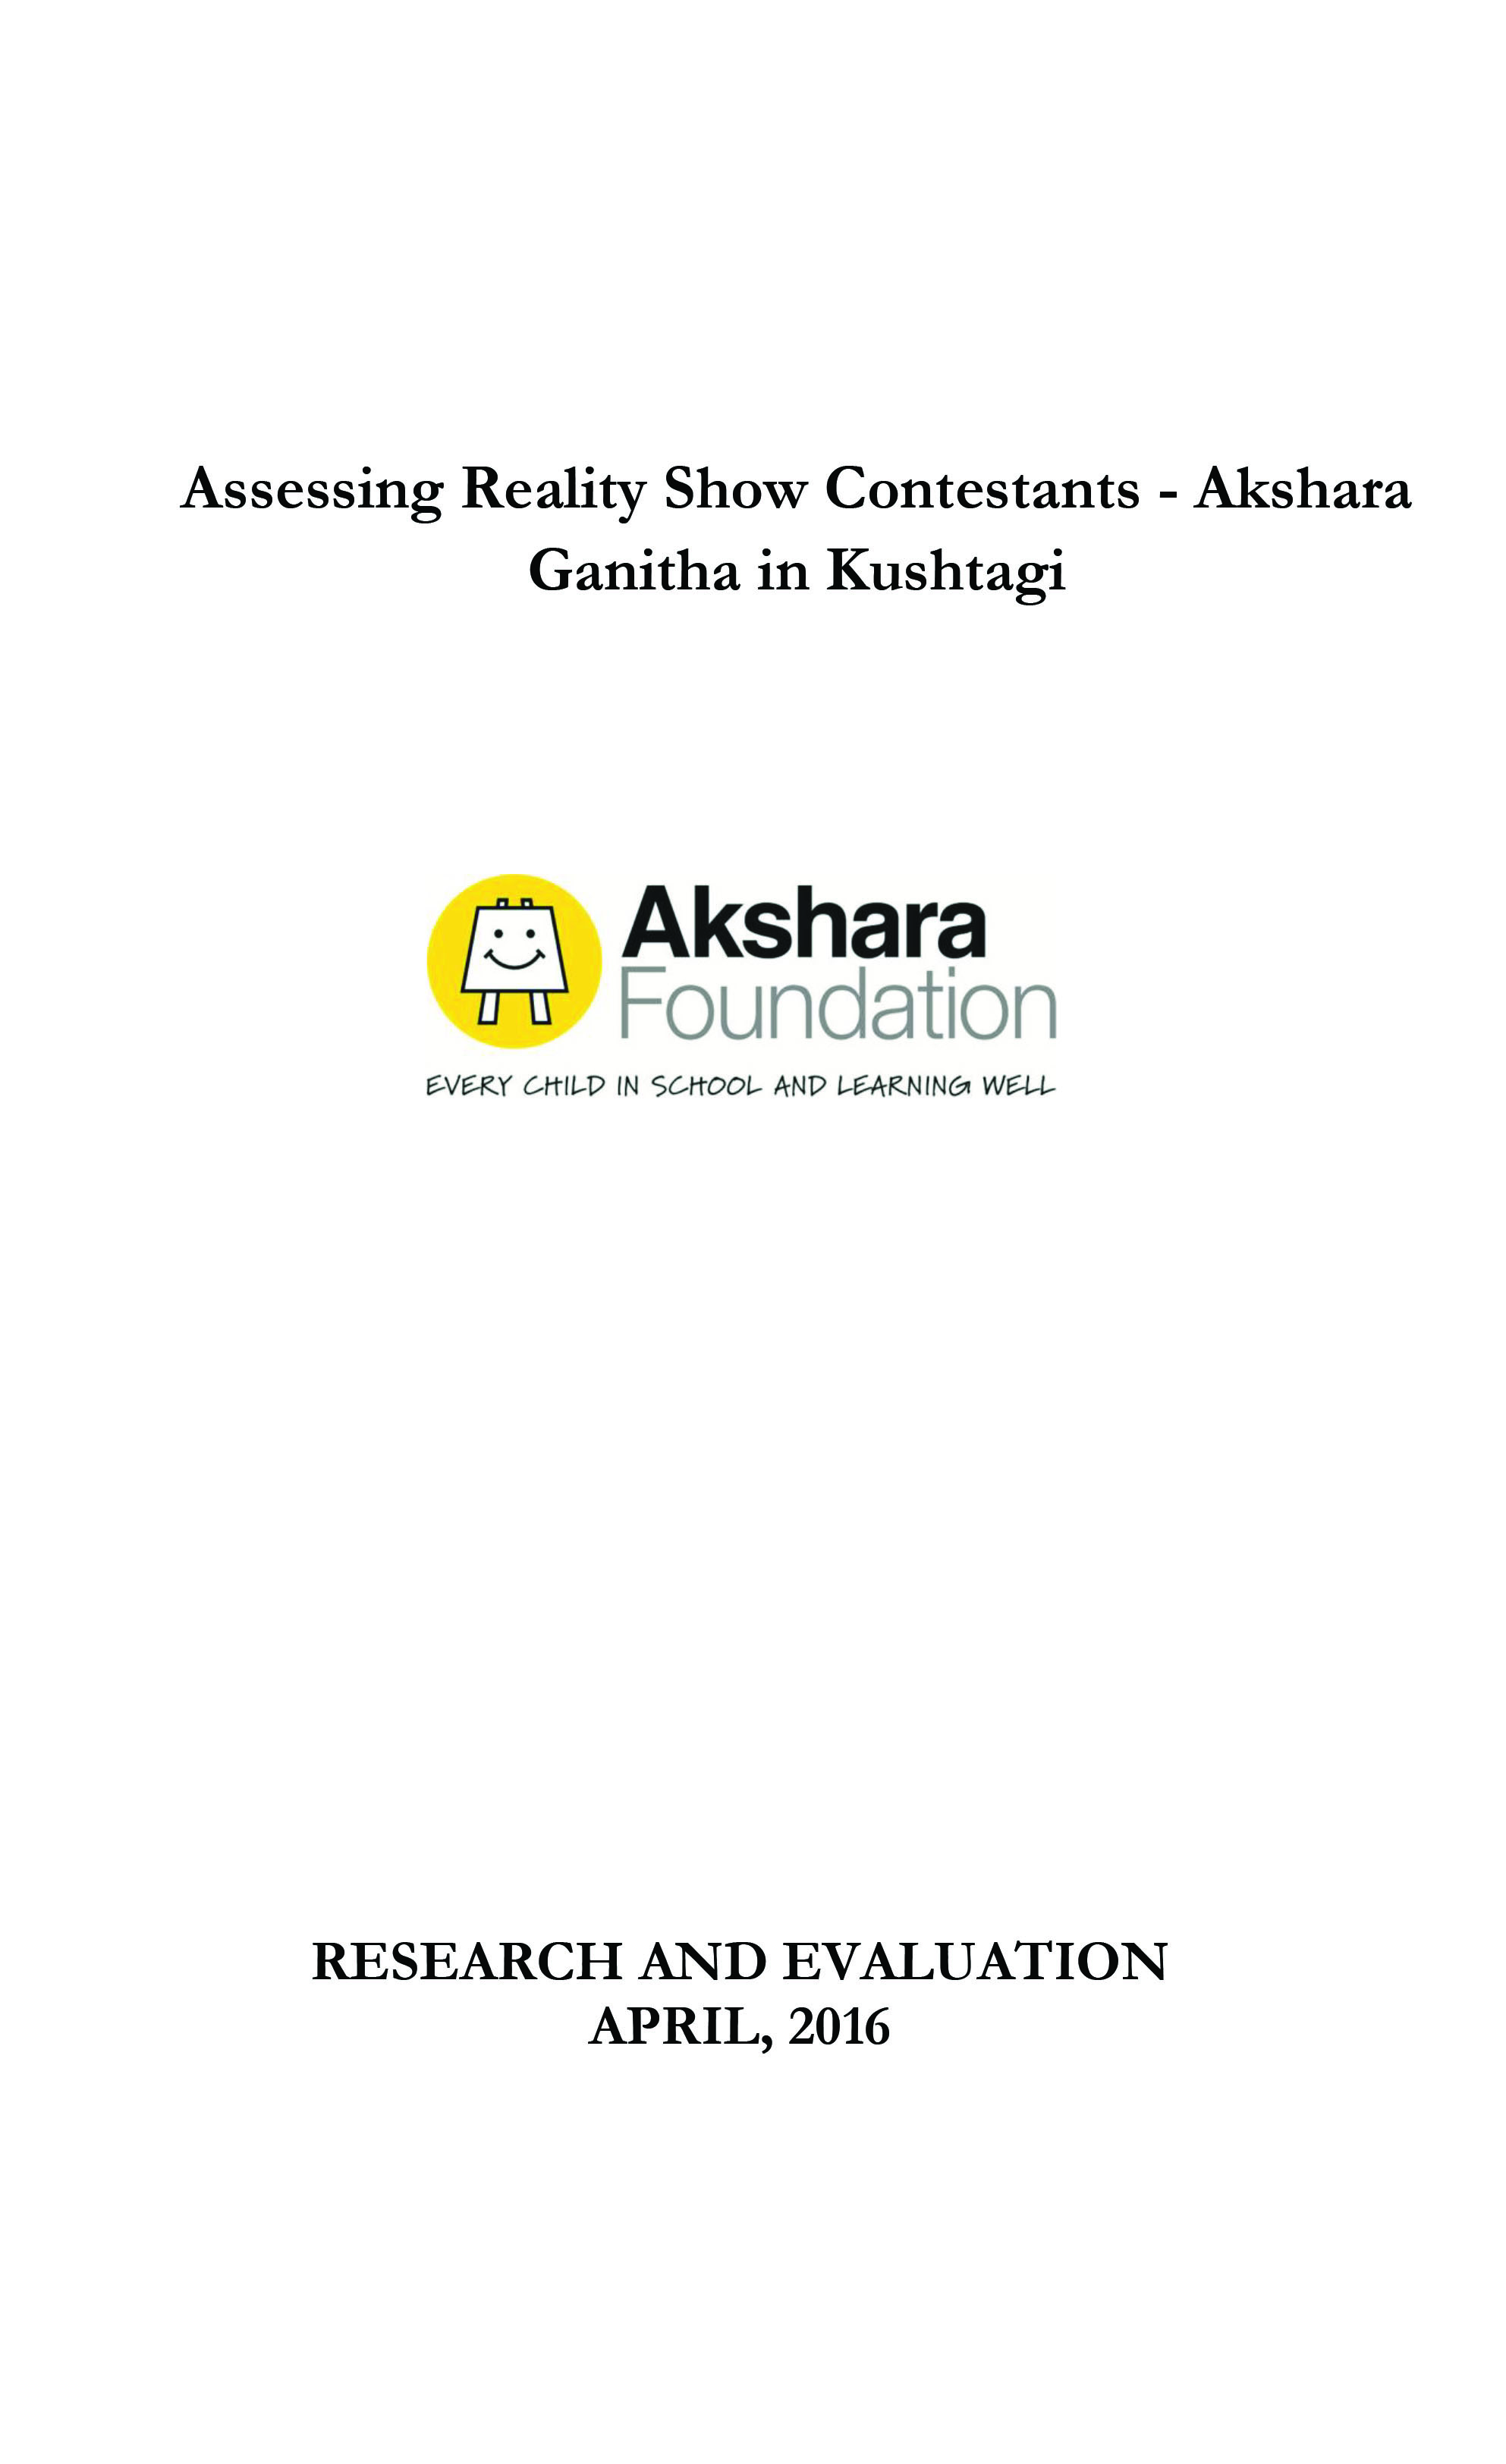 Assessing Reality Show Contestants - Akshara Ganitha in Kushtagi,2016